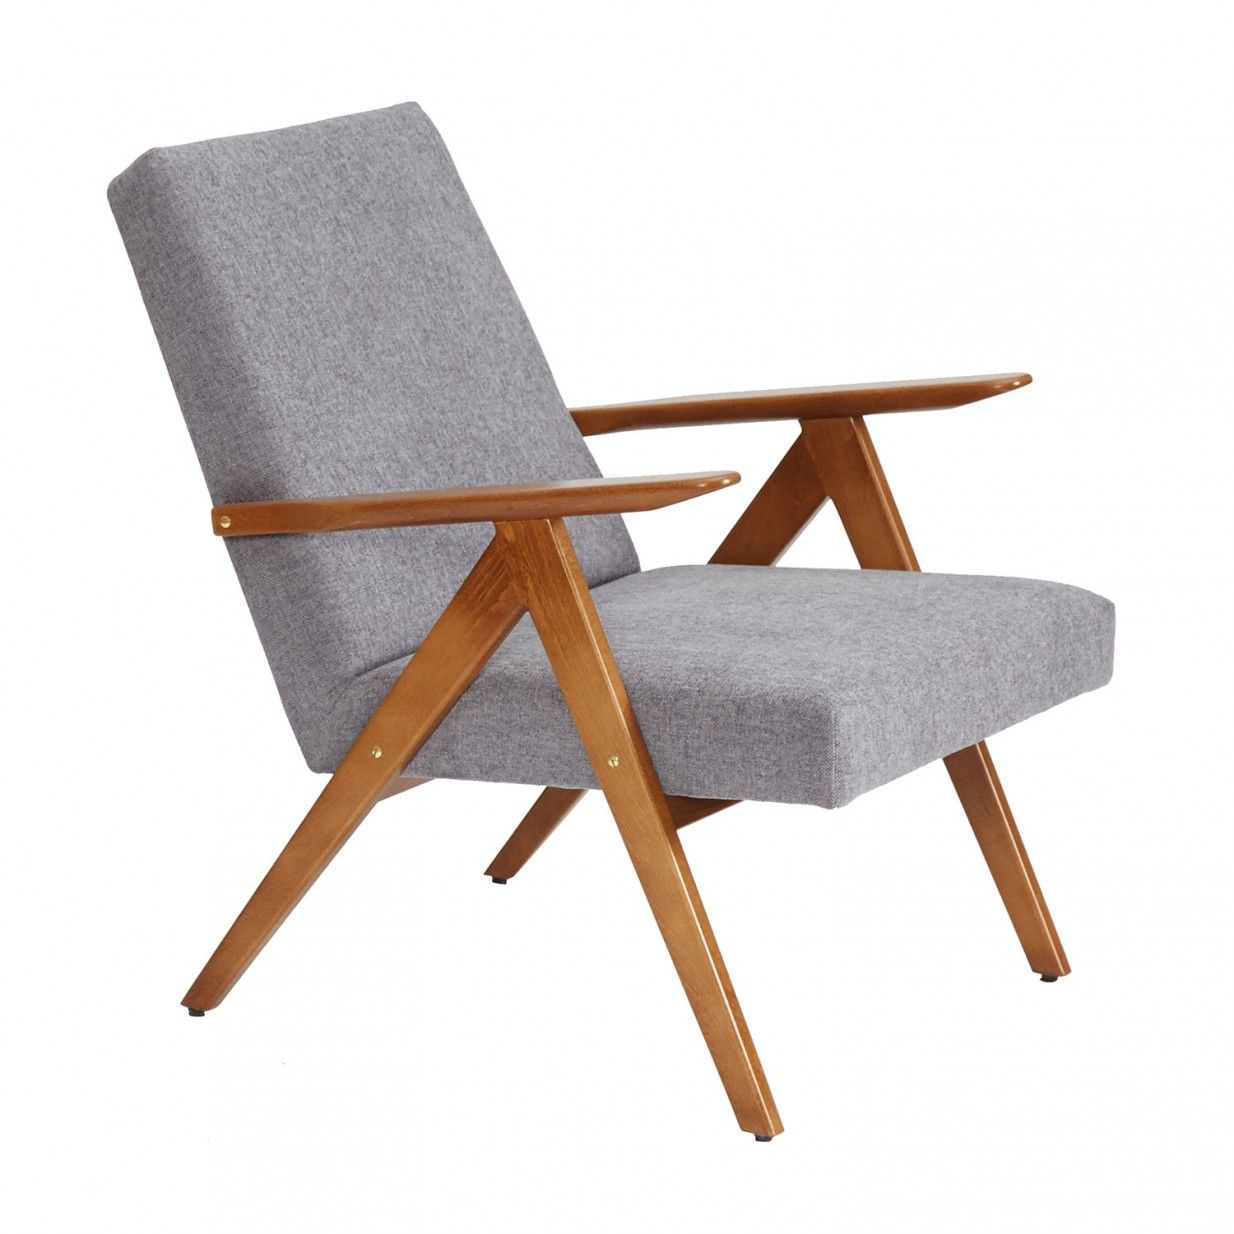 Sessel Grau Retro B 310 Var Sessel Grau Retro Home Seating Pinterest